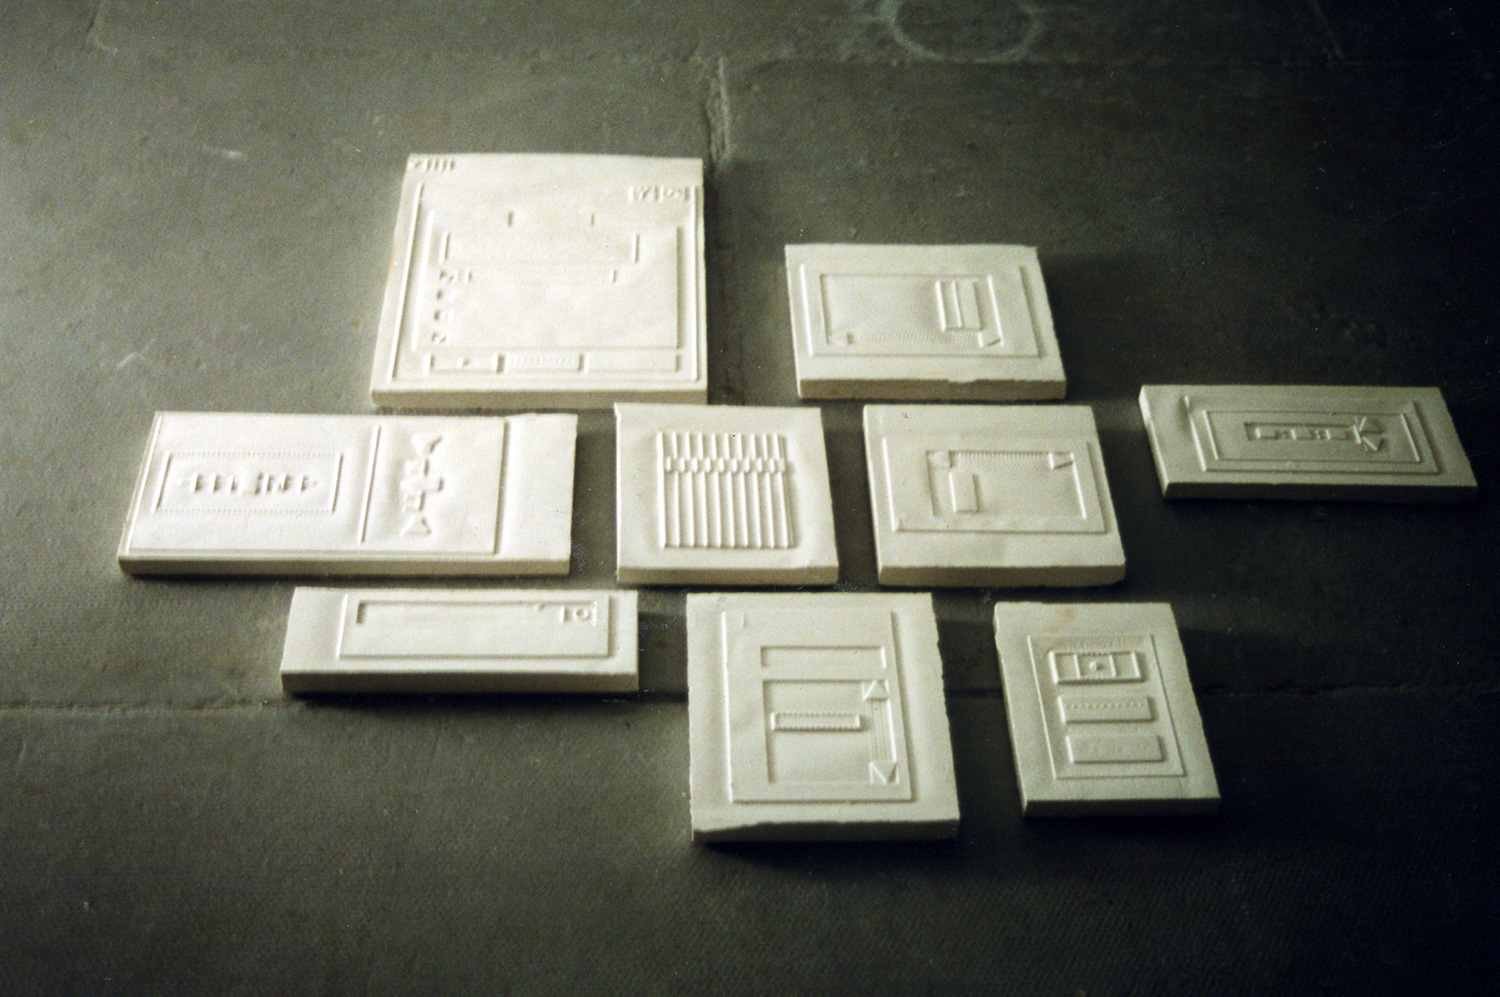 untitled brail for windows 2000  ︱  plaster  ︱  dimensions variable